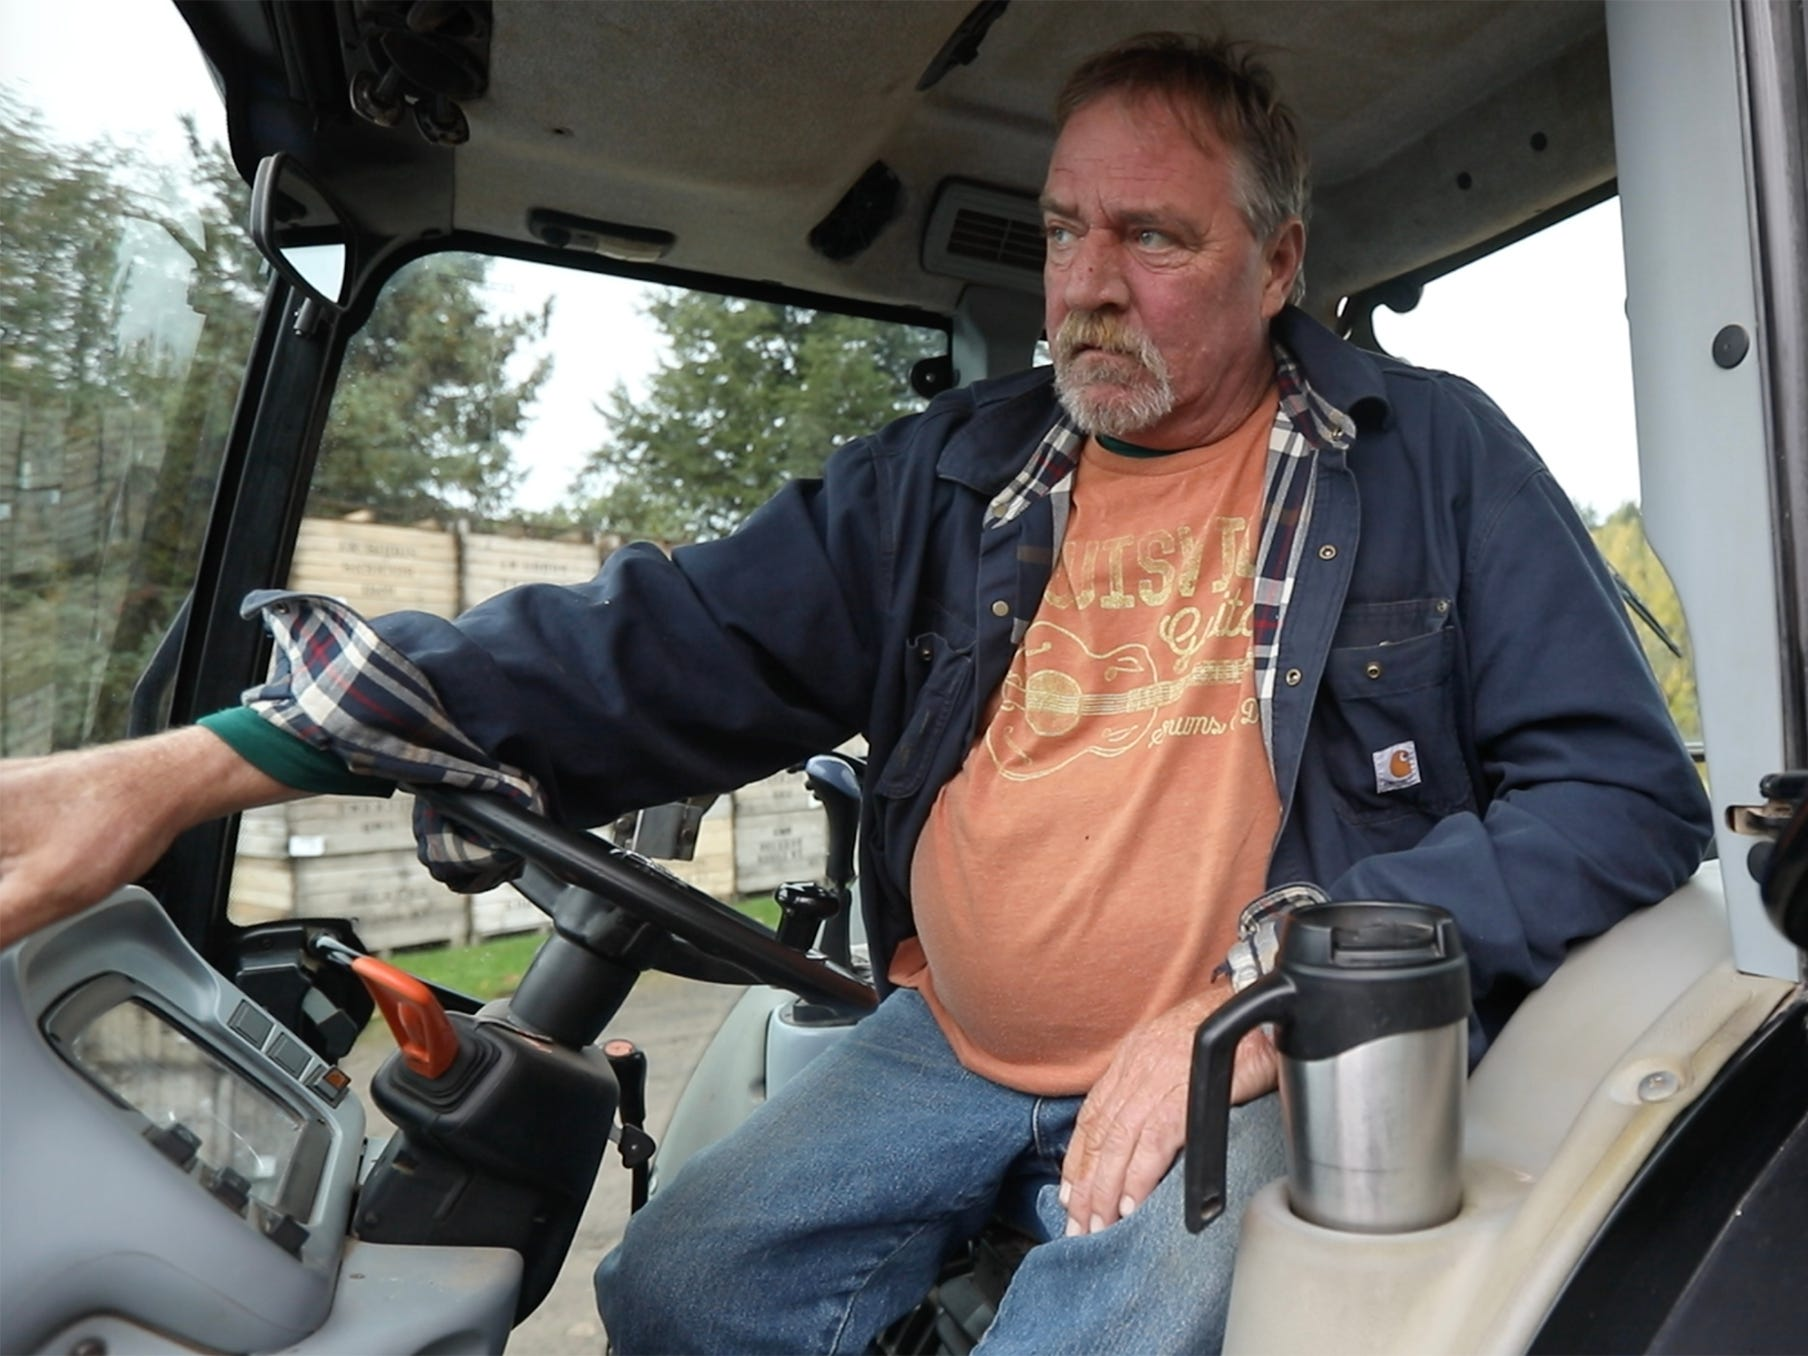 Mike Beckens, a partner in GMB Beckens Farms LLC, said it was unsettling coming to the orchard wondering whether the suspect in the recent shootings was hiding in his barn.